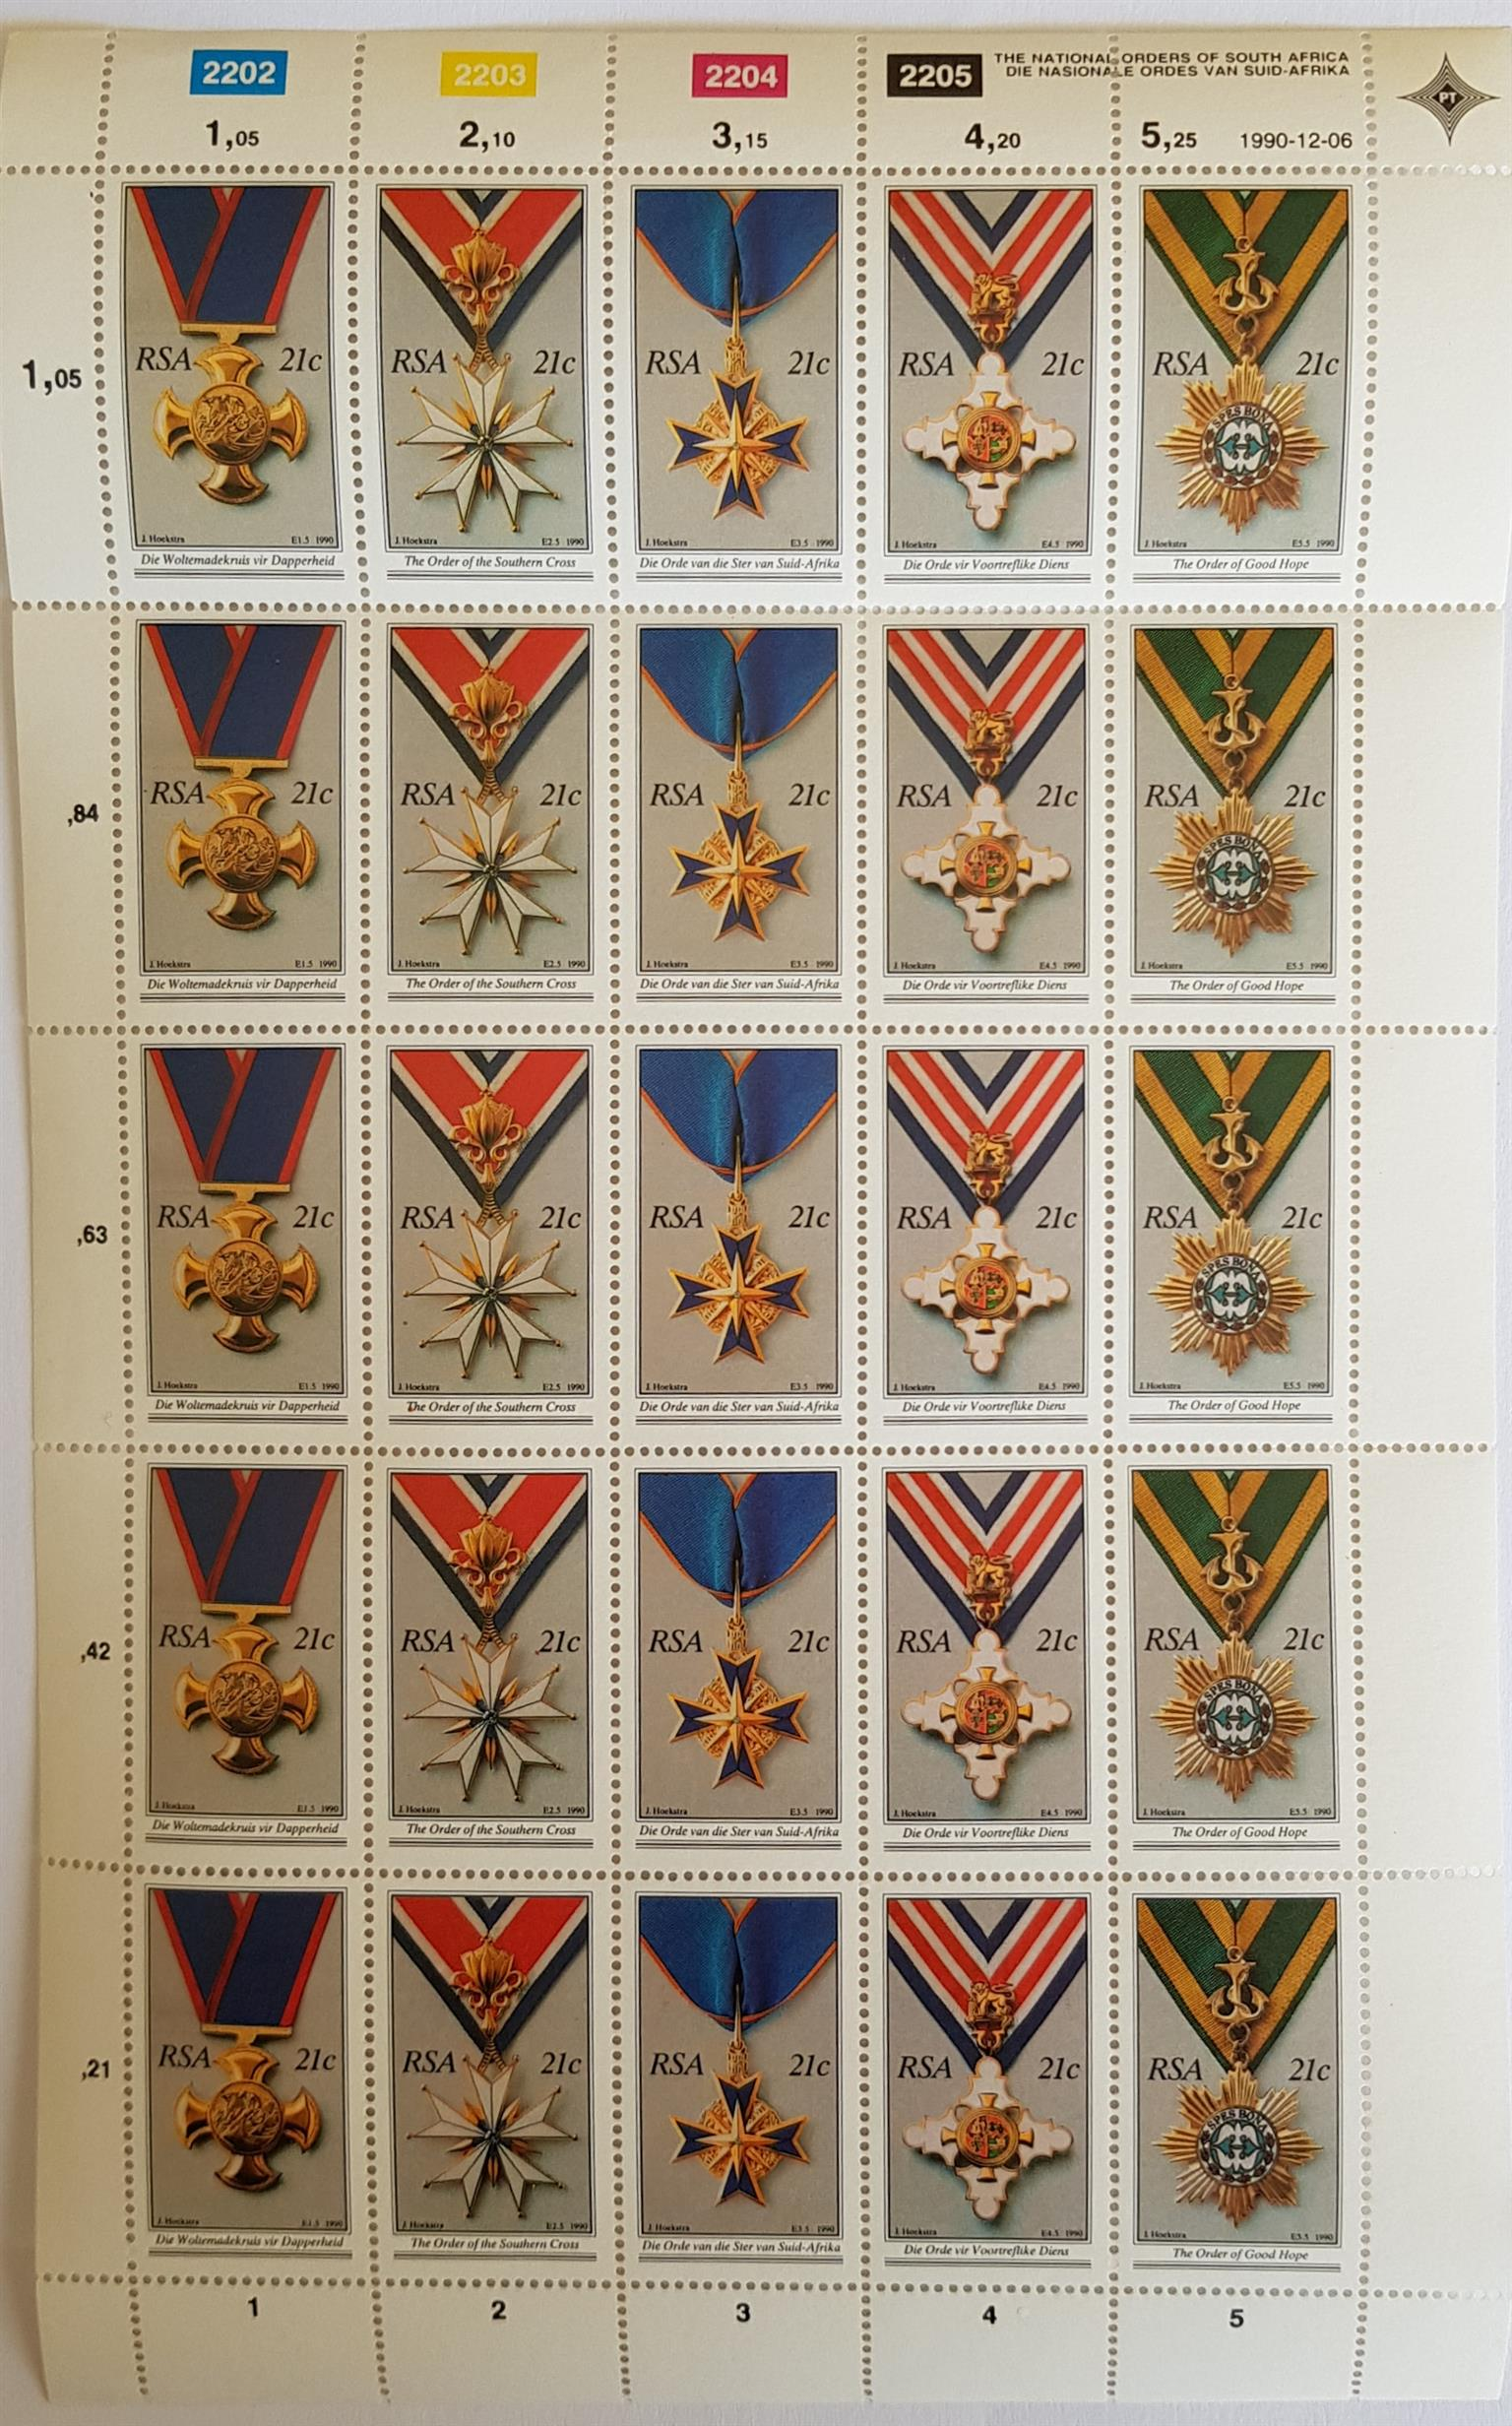 Stamps - The National Orders of South Africa 21c - 2202 to 2205  - 06.12.1990